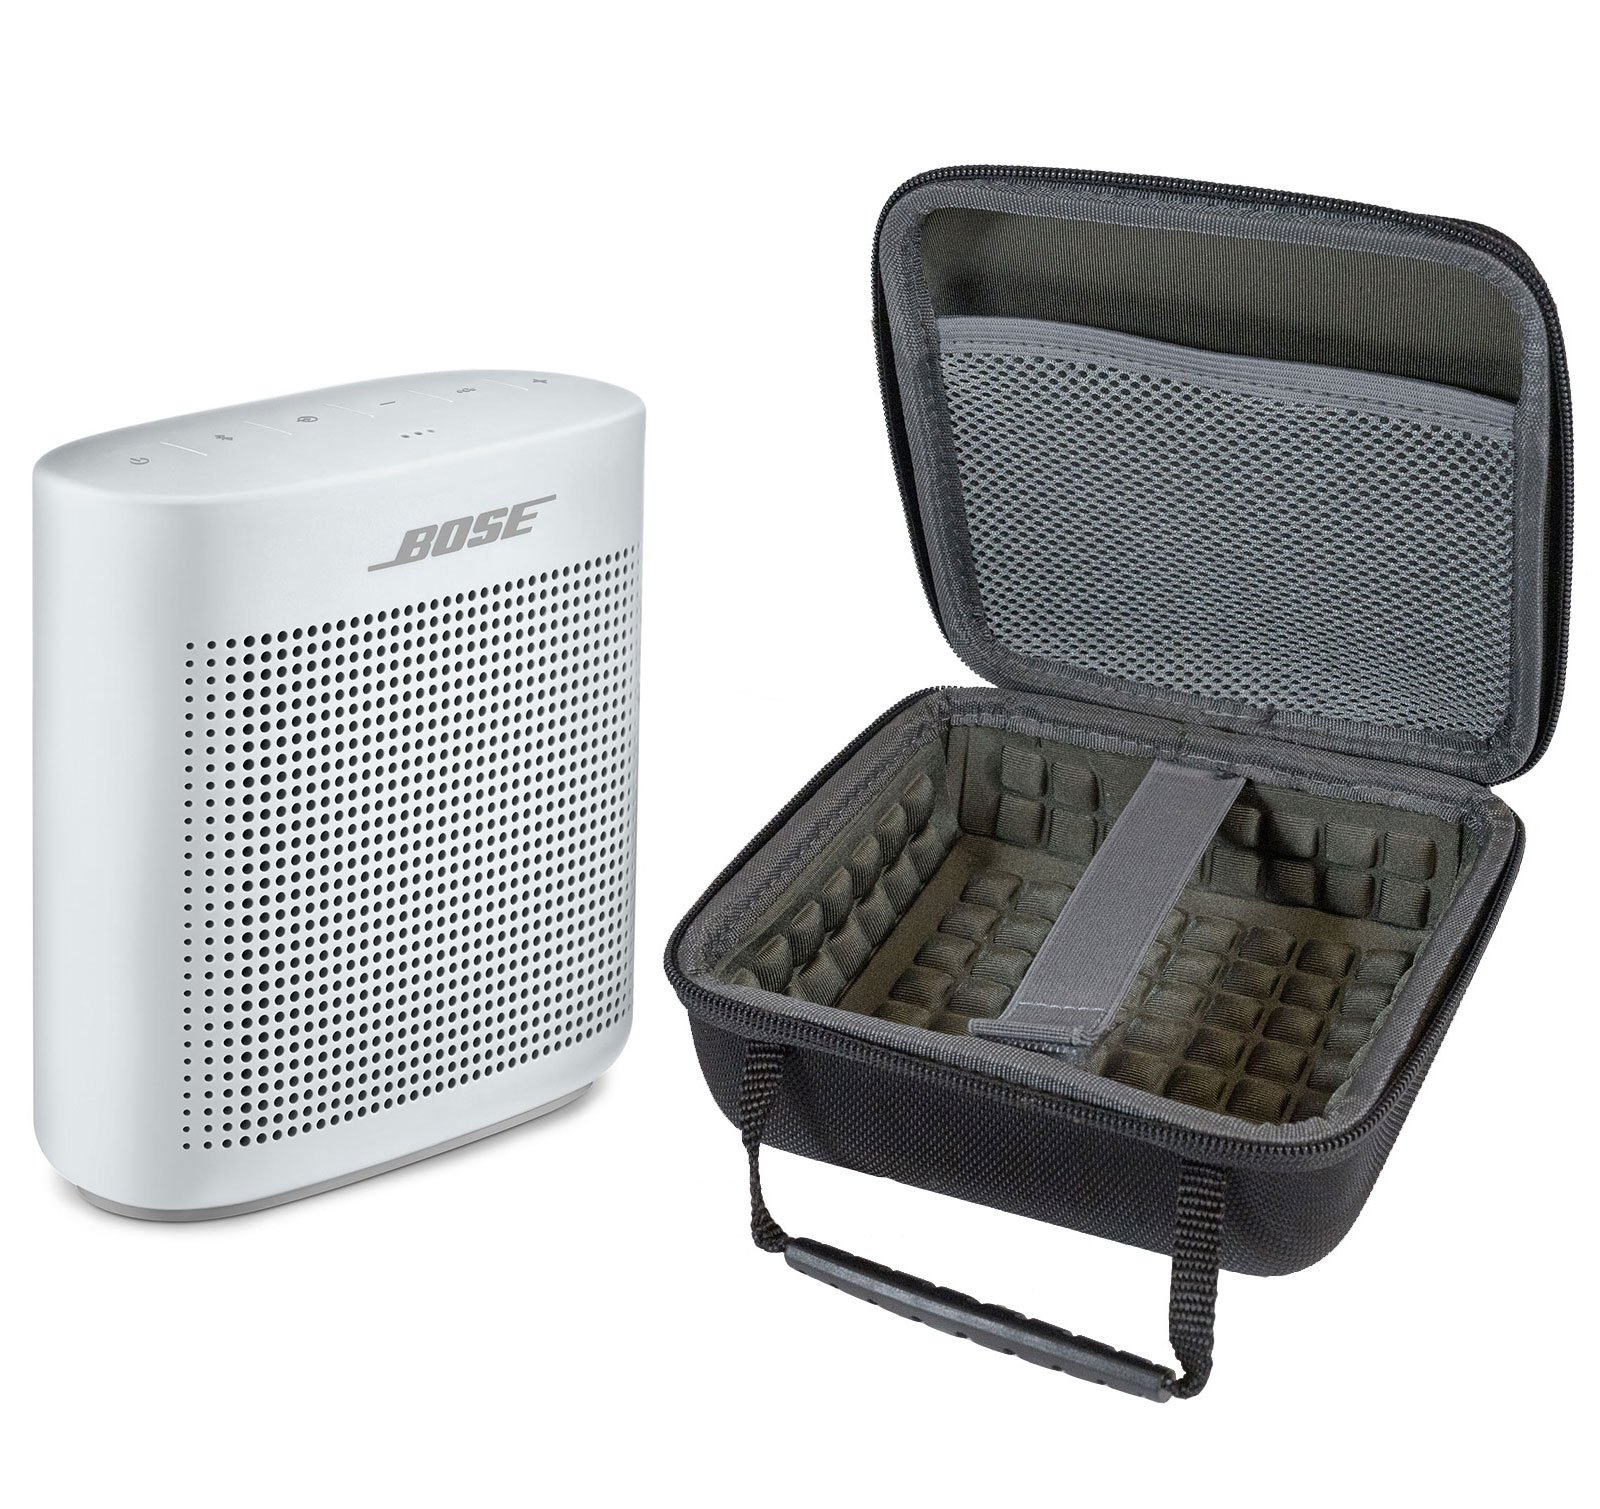 Bose SoundLink Color II Bluetooth Speaker, Polar White, with Portable Hardshell Travel Case by Bose